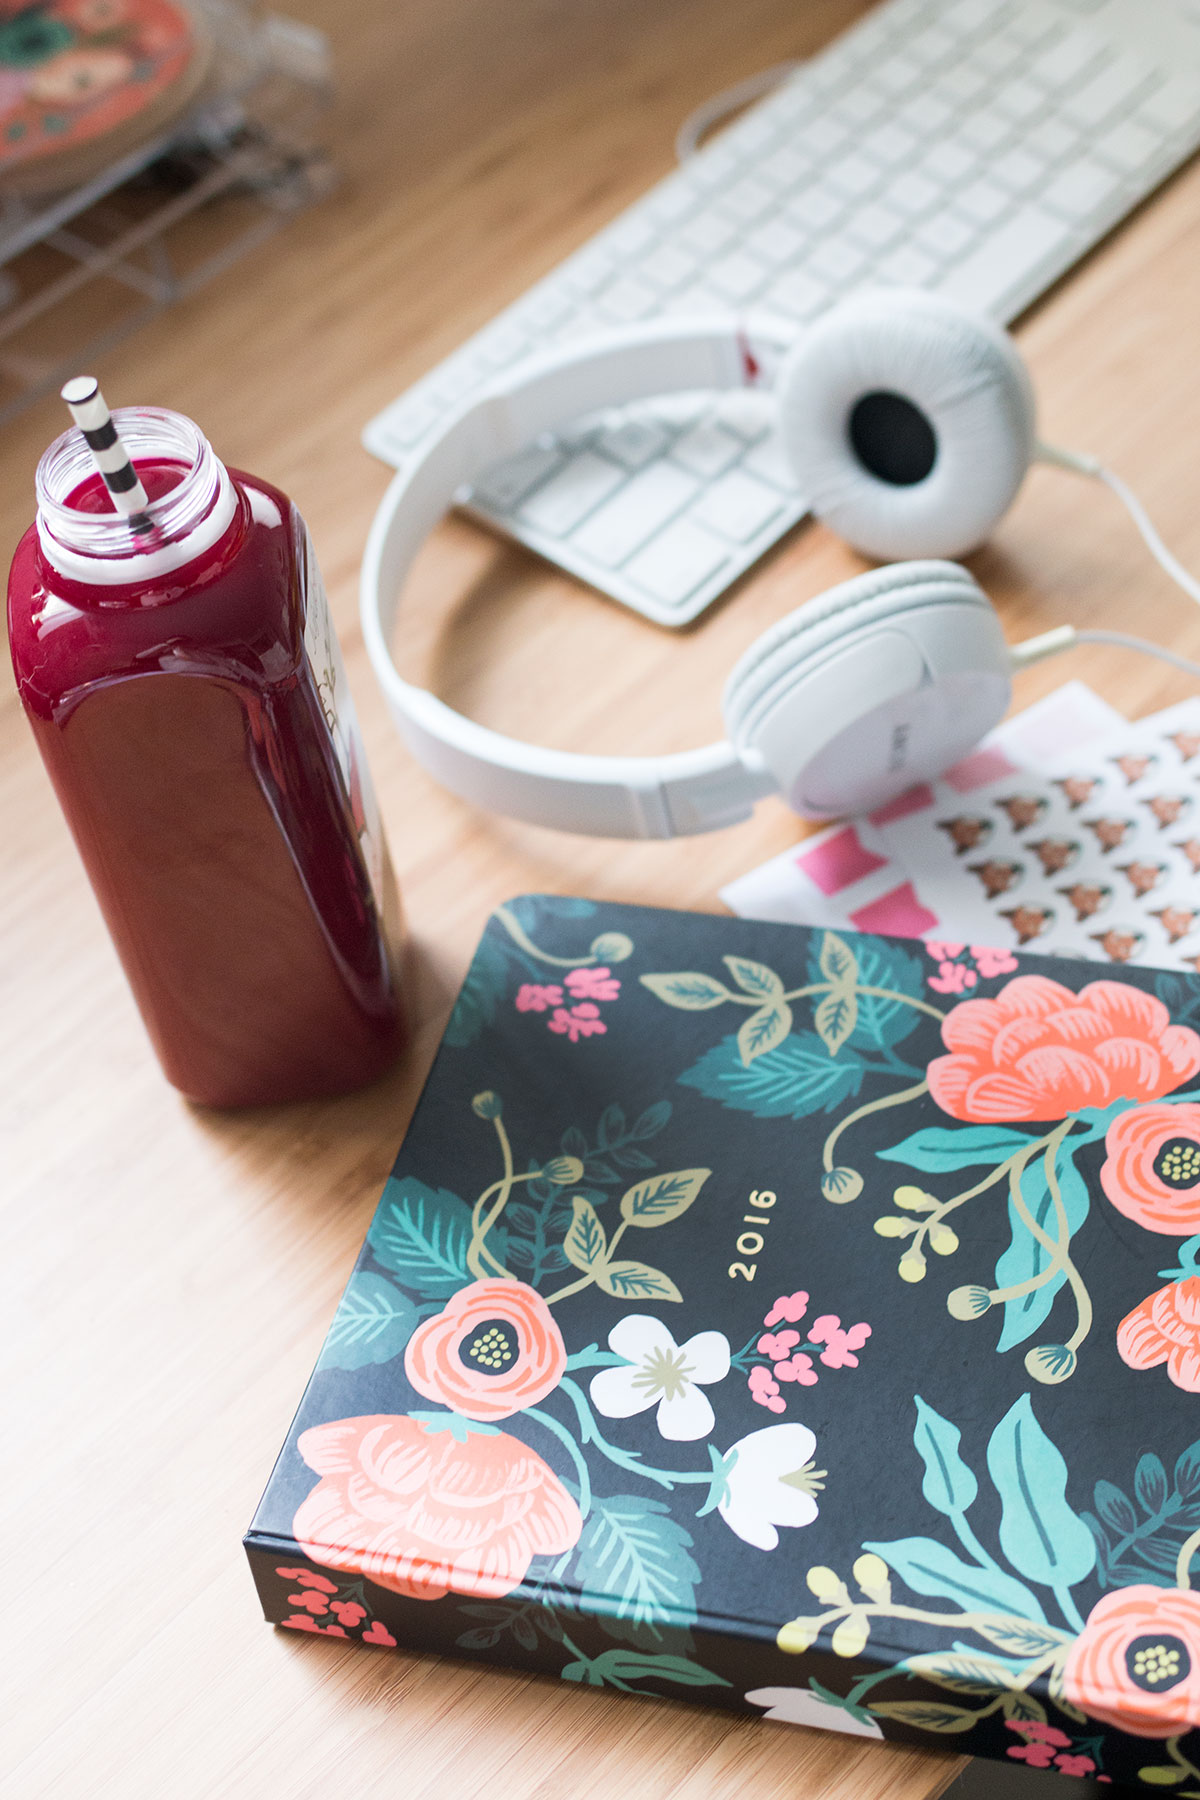 New Year's Resolutions: Jujubeet Beet Juice, Sony Headphones, Rifle Paper Co Planner // hellorigby.com seattle fashion & lifestyle blog